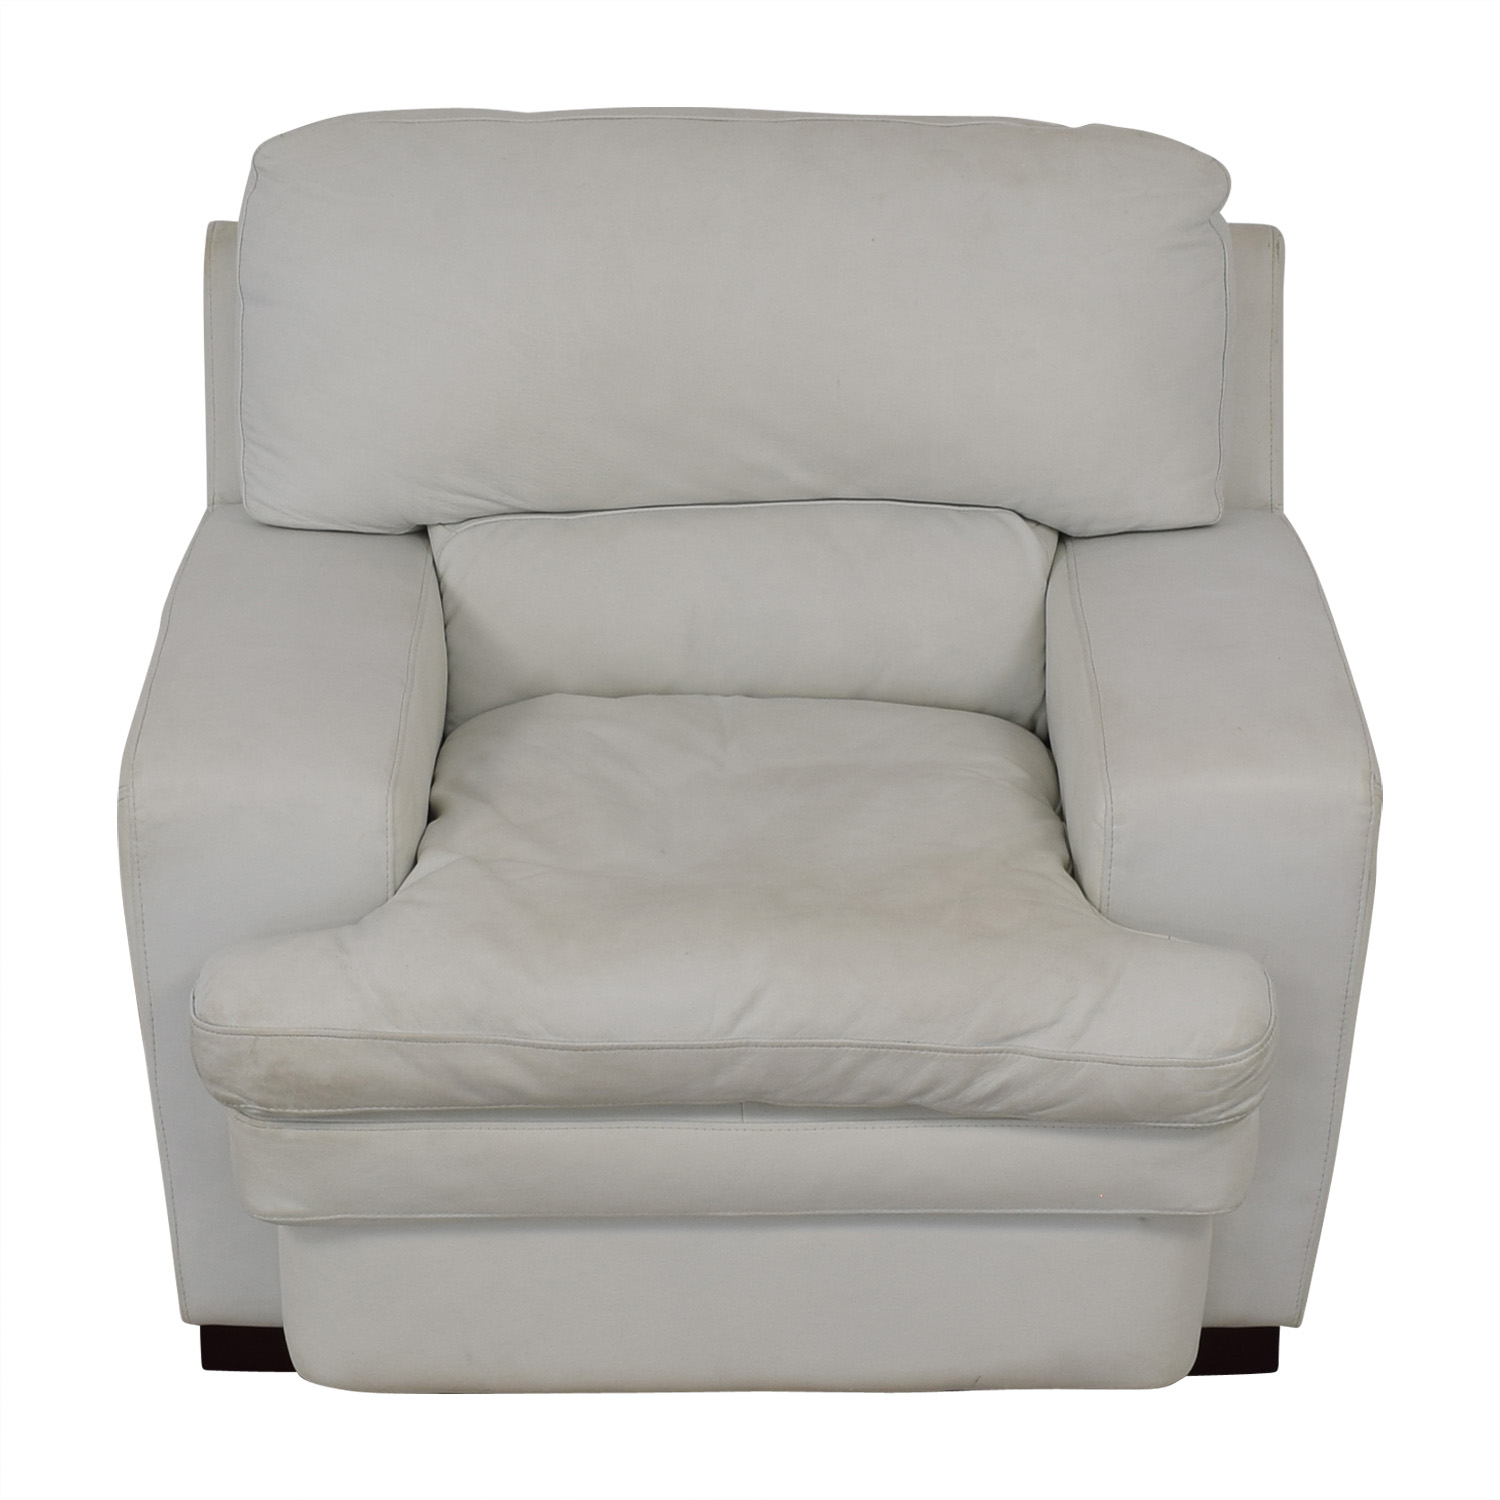 90% OFF - Overstuffed White Armchair / Chairs